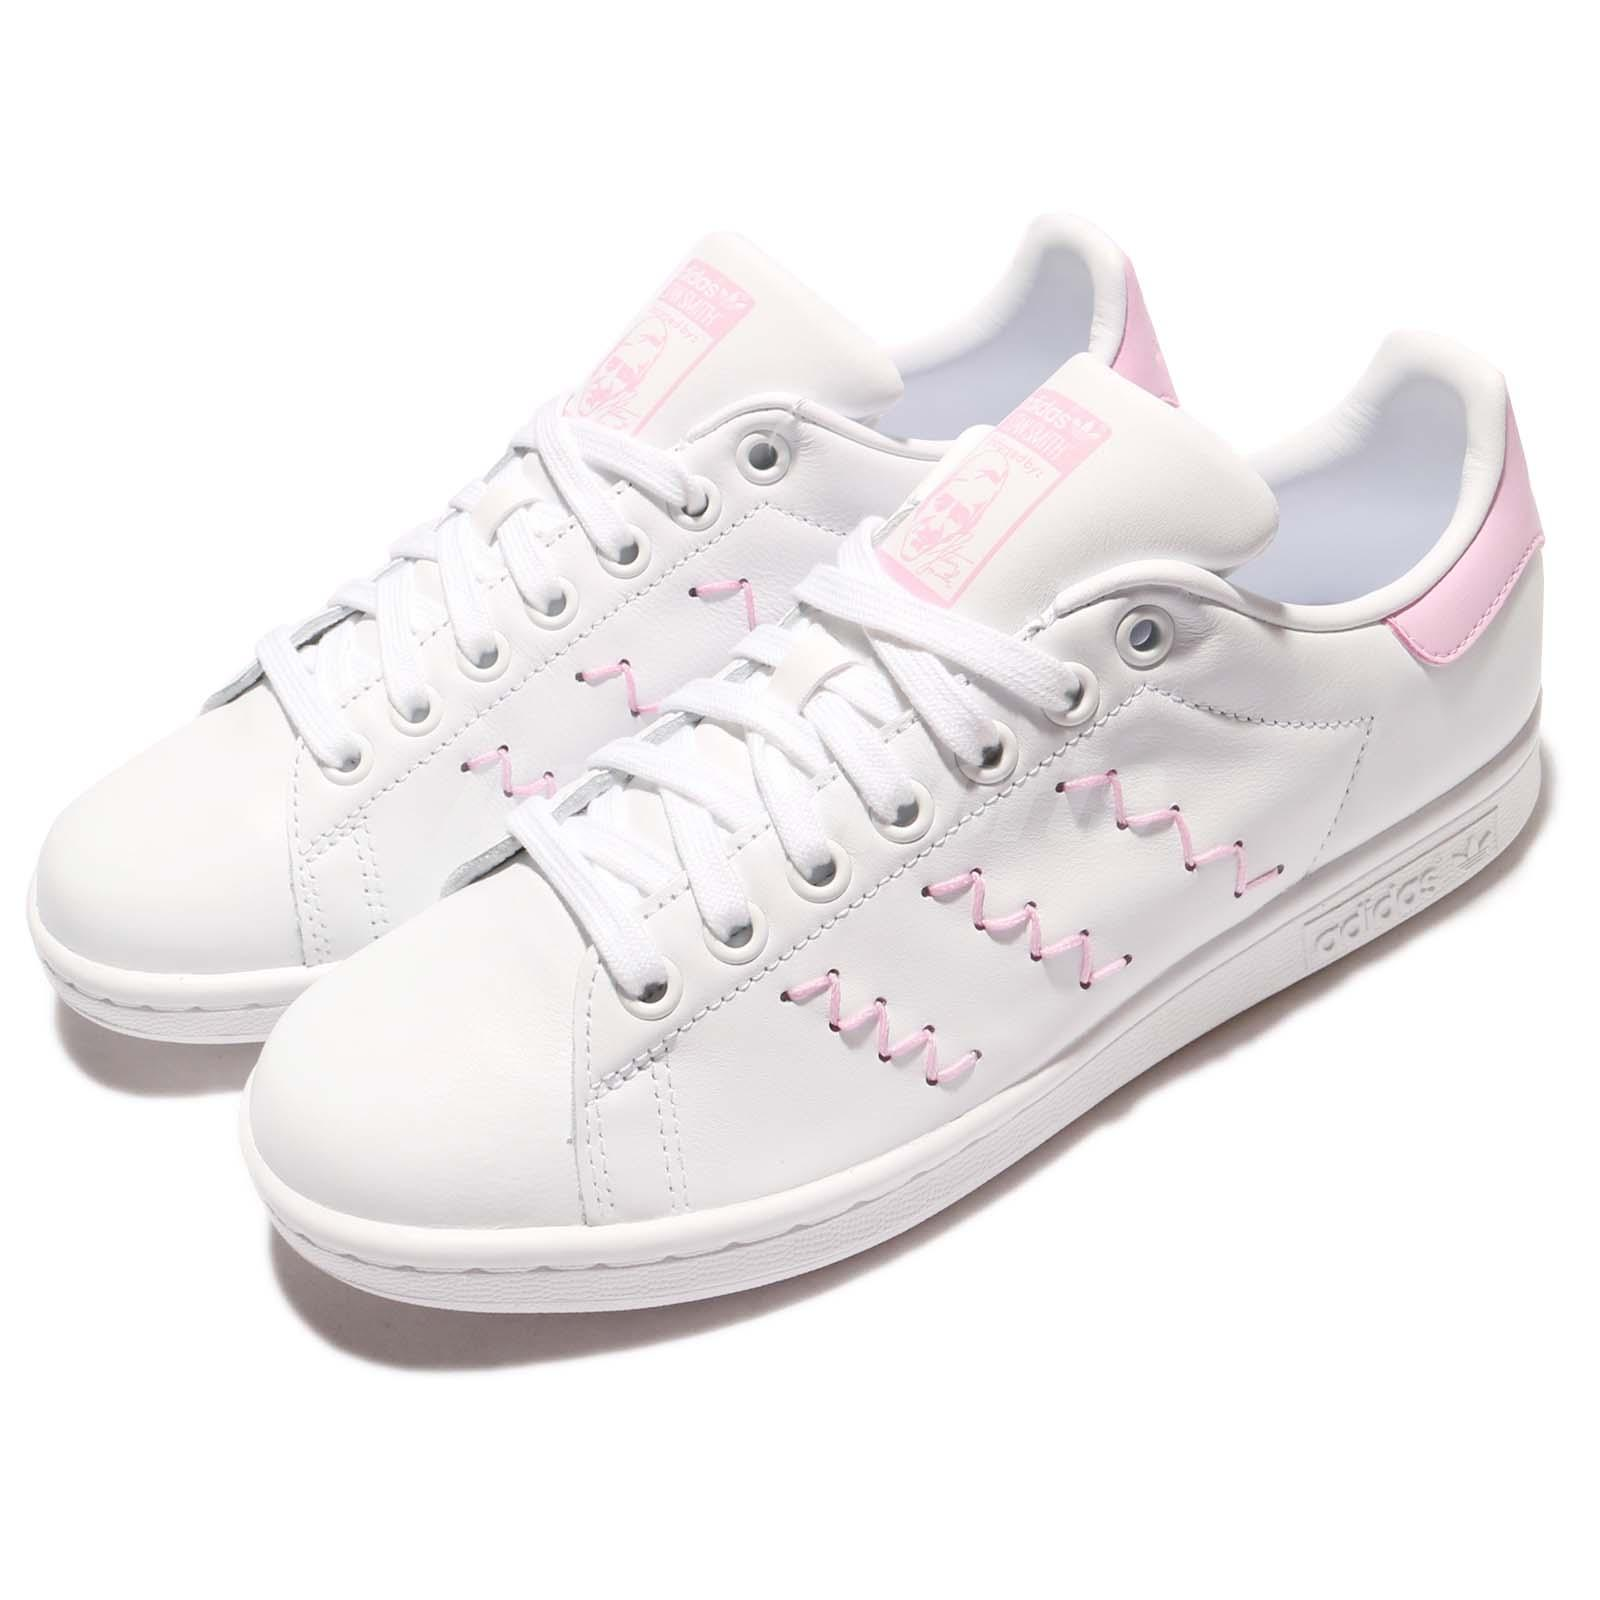 adidas originals stan smith w zig zag white pink leather women classic bz0401 ebay. Black Bedroom Furniture Sets. Home Design Ideas